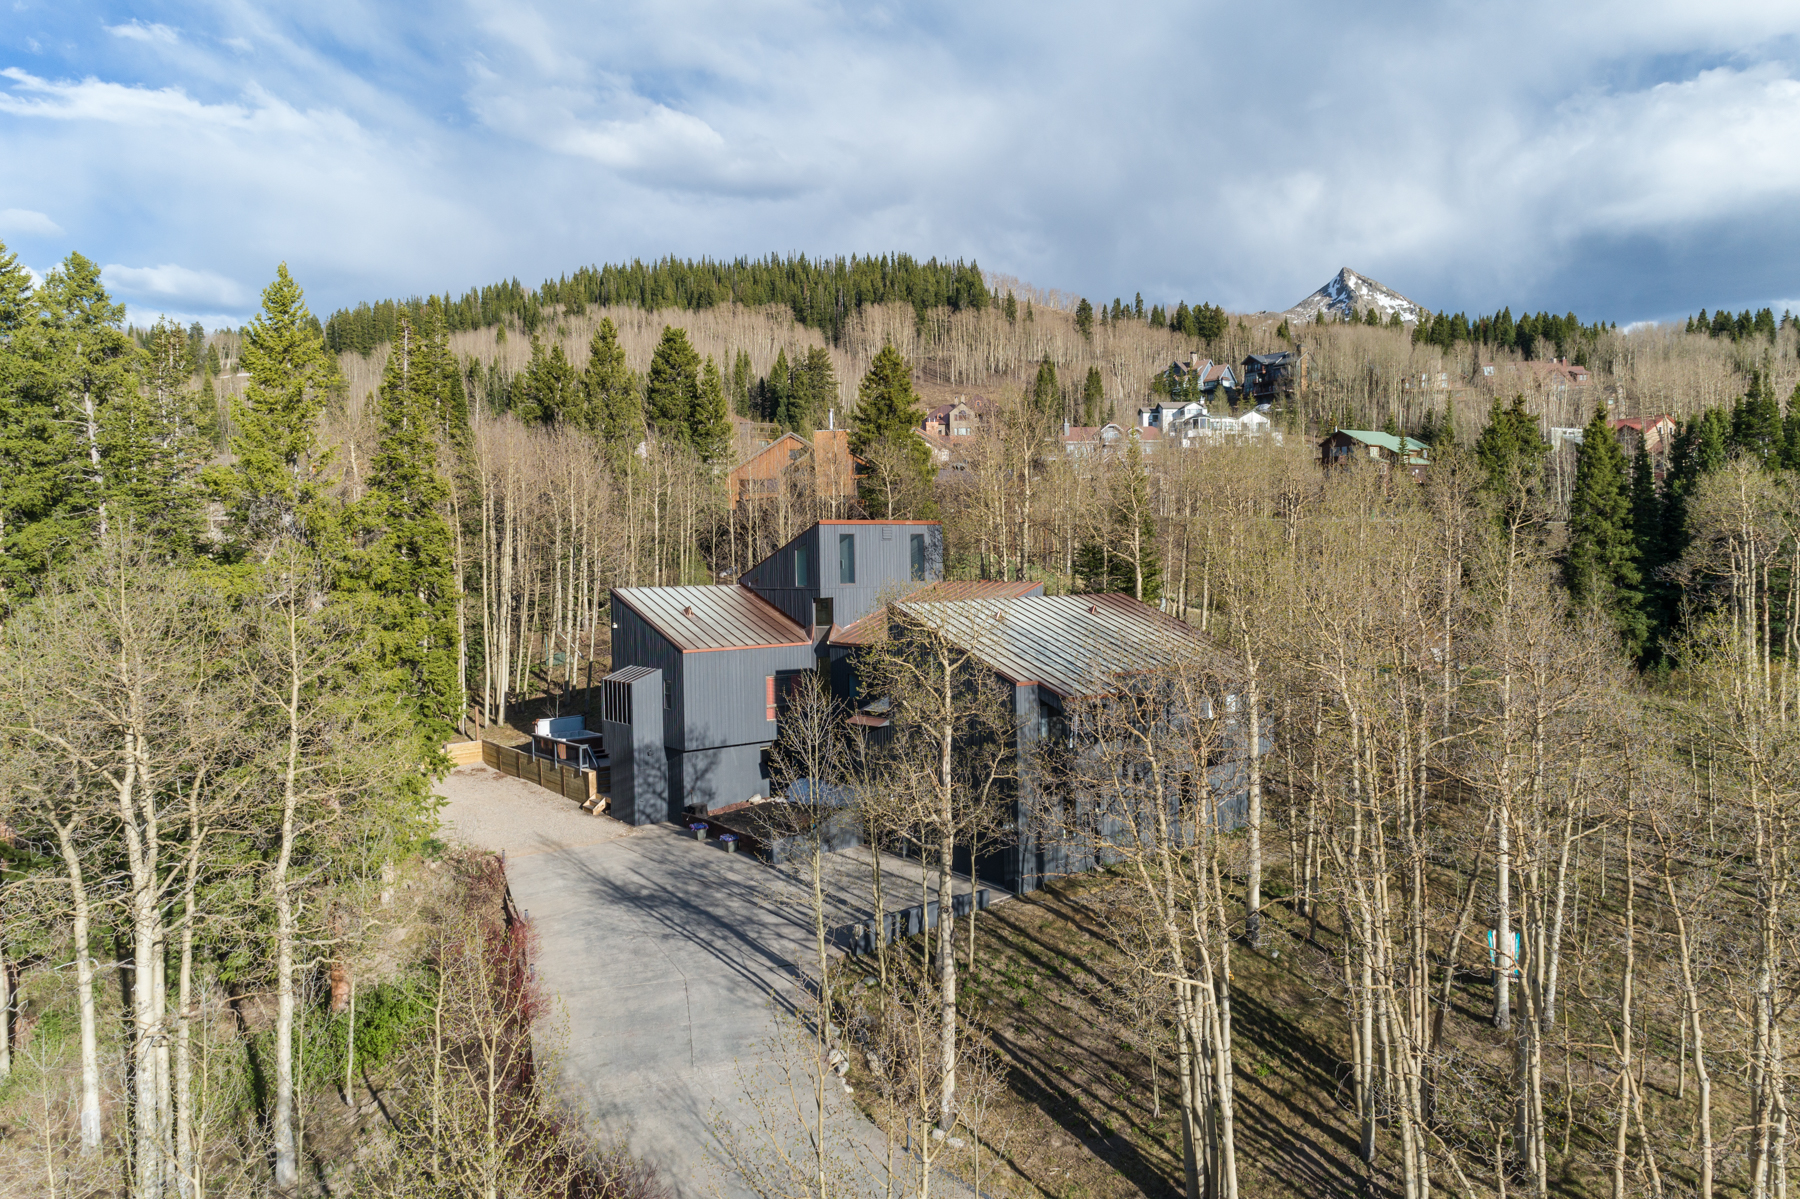 Single Family Home for Active at Secluded, Contemporary Mountain Home 16 Red Lady Way Mount Crested Butte, Colorado 81225 United States